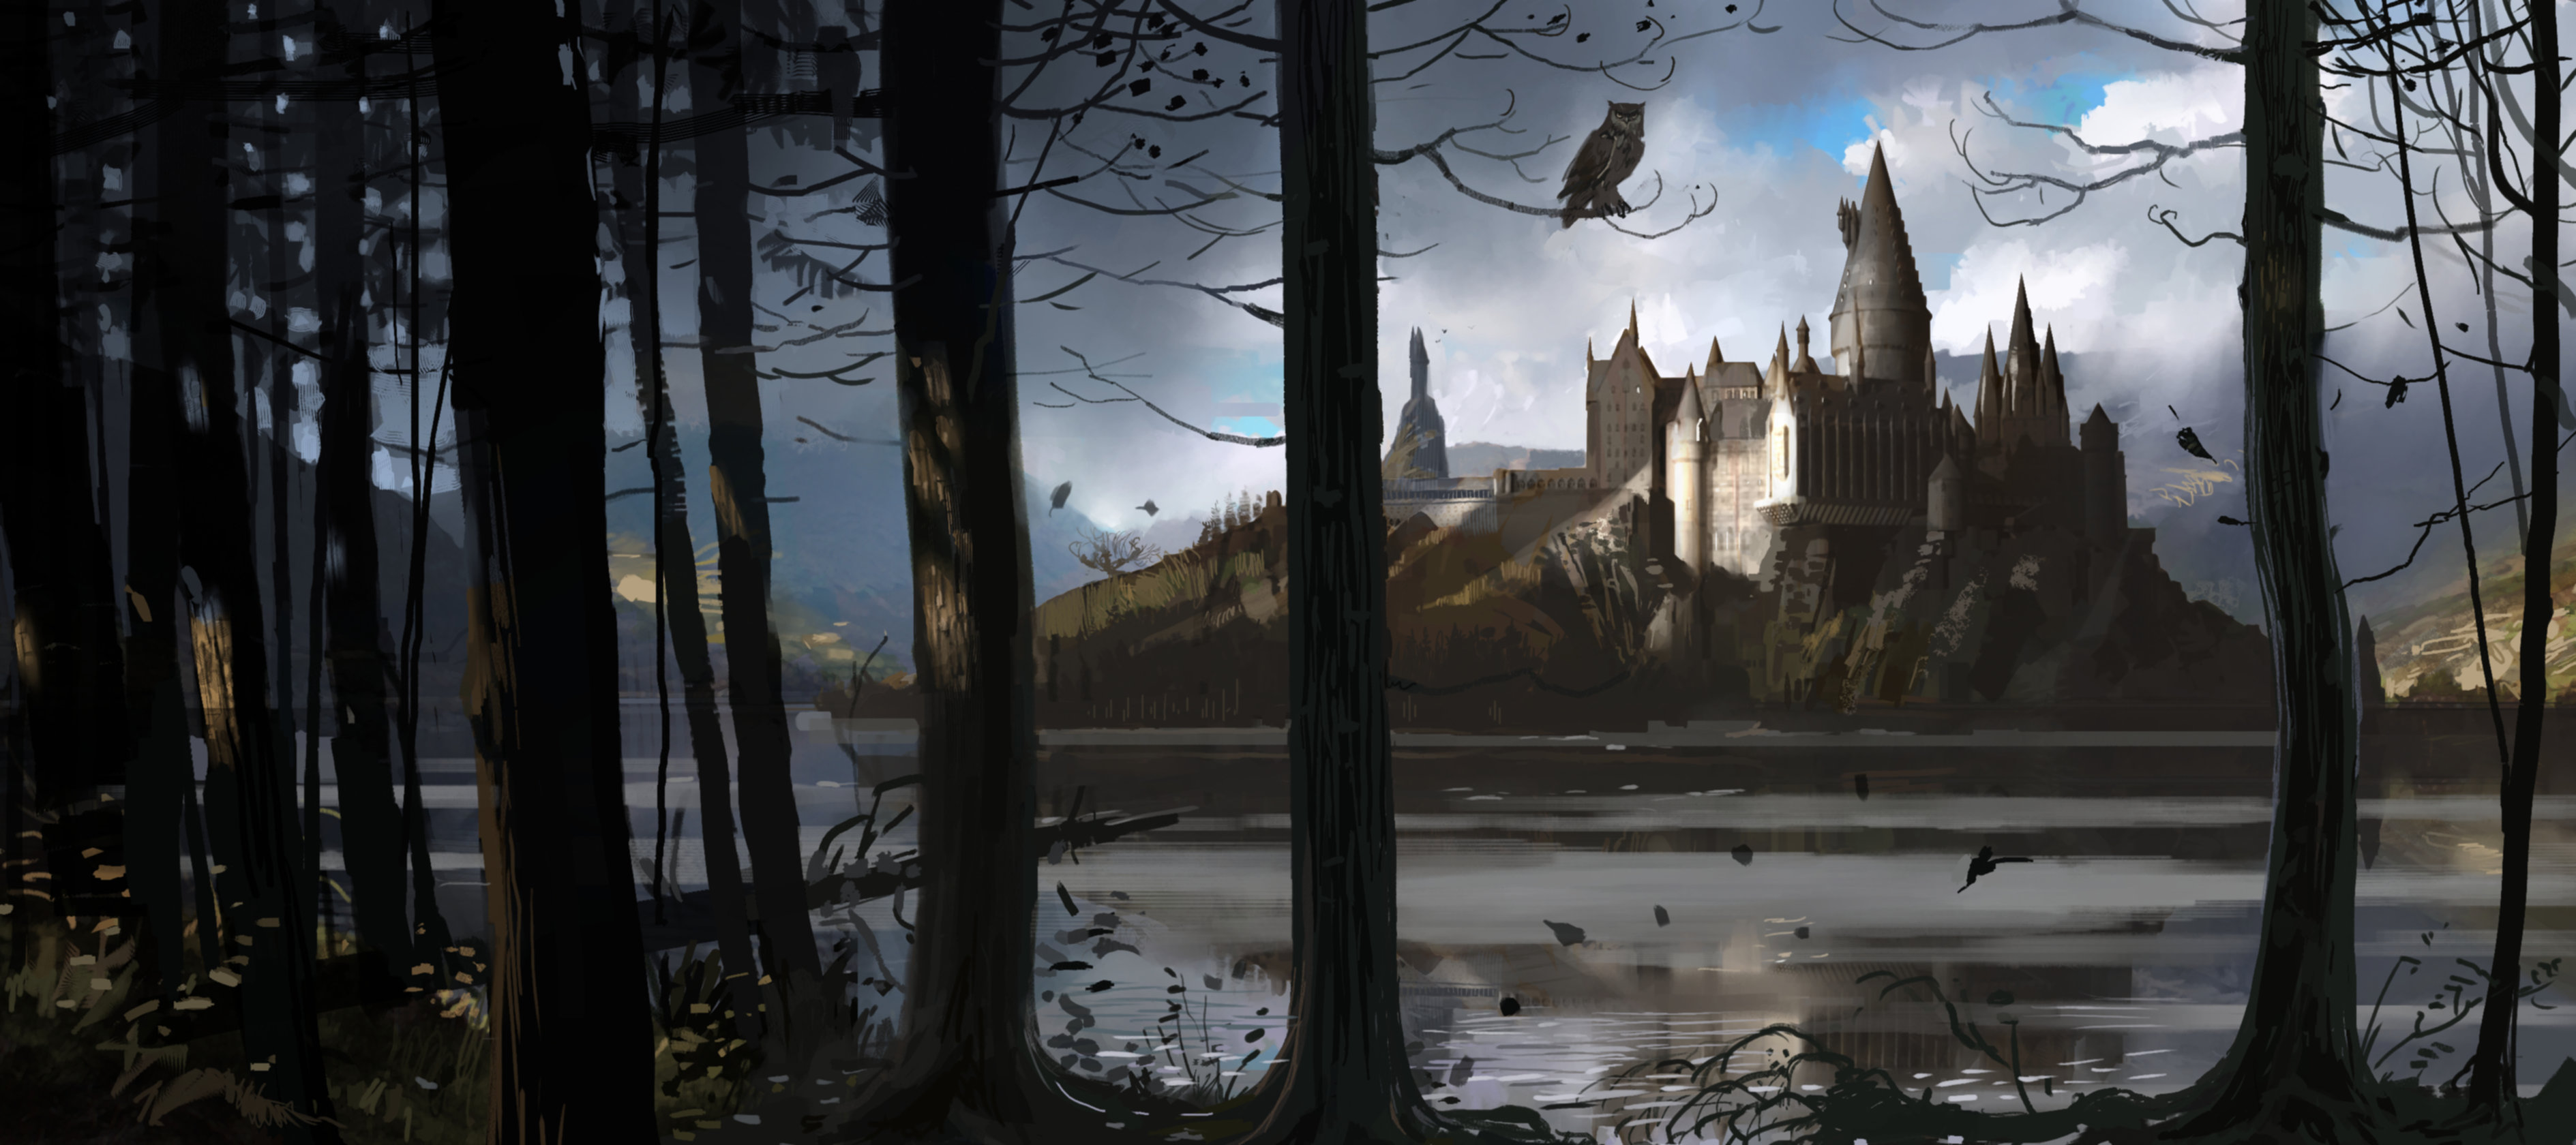 An illustration of Hogwarts through the trees